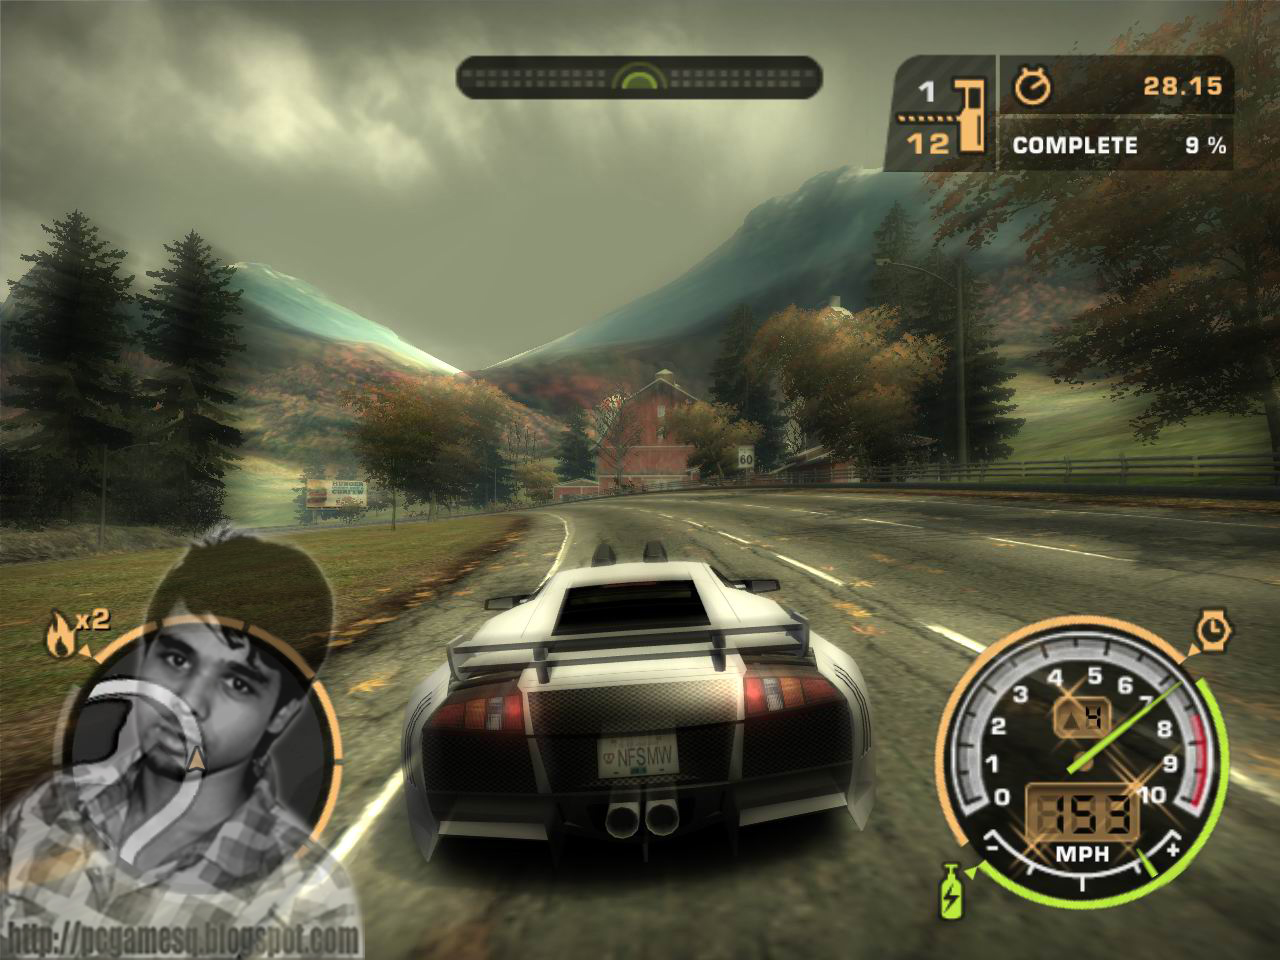 https://www.neoseeker.com/forums/26864/t2103610-remake-need-for-speed-most-wanted-2005/